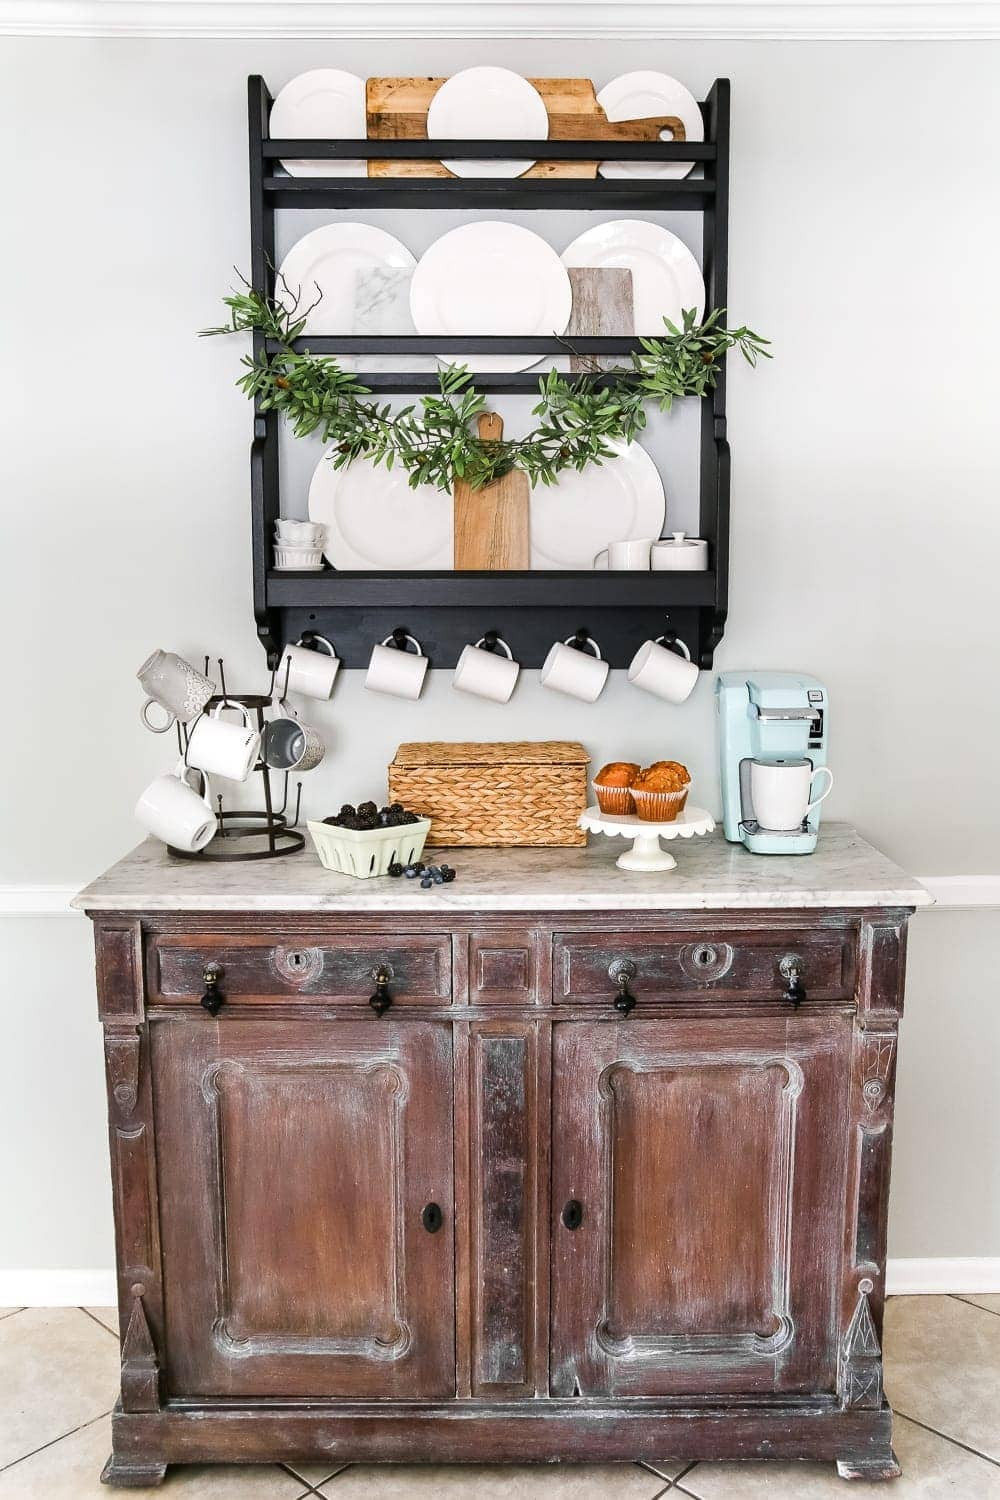 White Waxed Marble Top Coffee Bar Makeover | blesserhouse.com - An old, damaged marble topped buffet gets a clean up and white wax makeover and is styled into a modern, chic coffee bar.